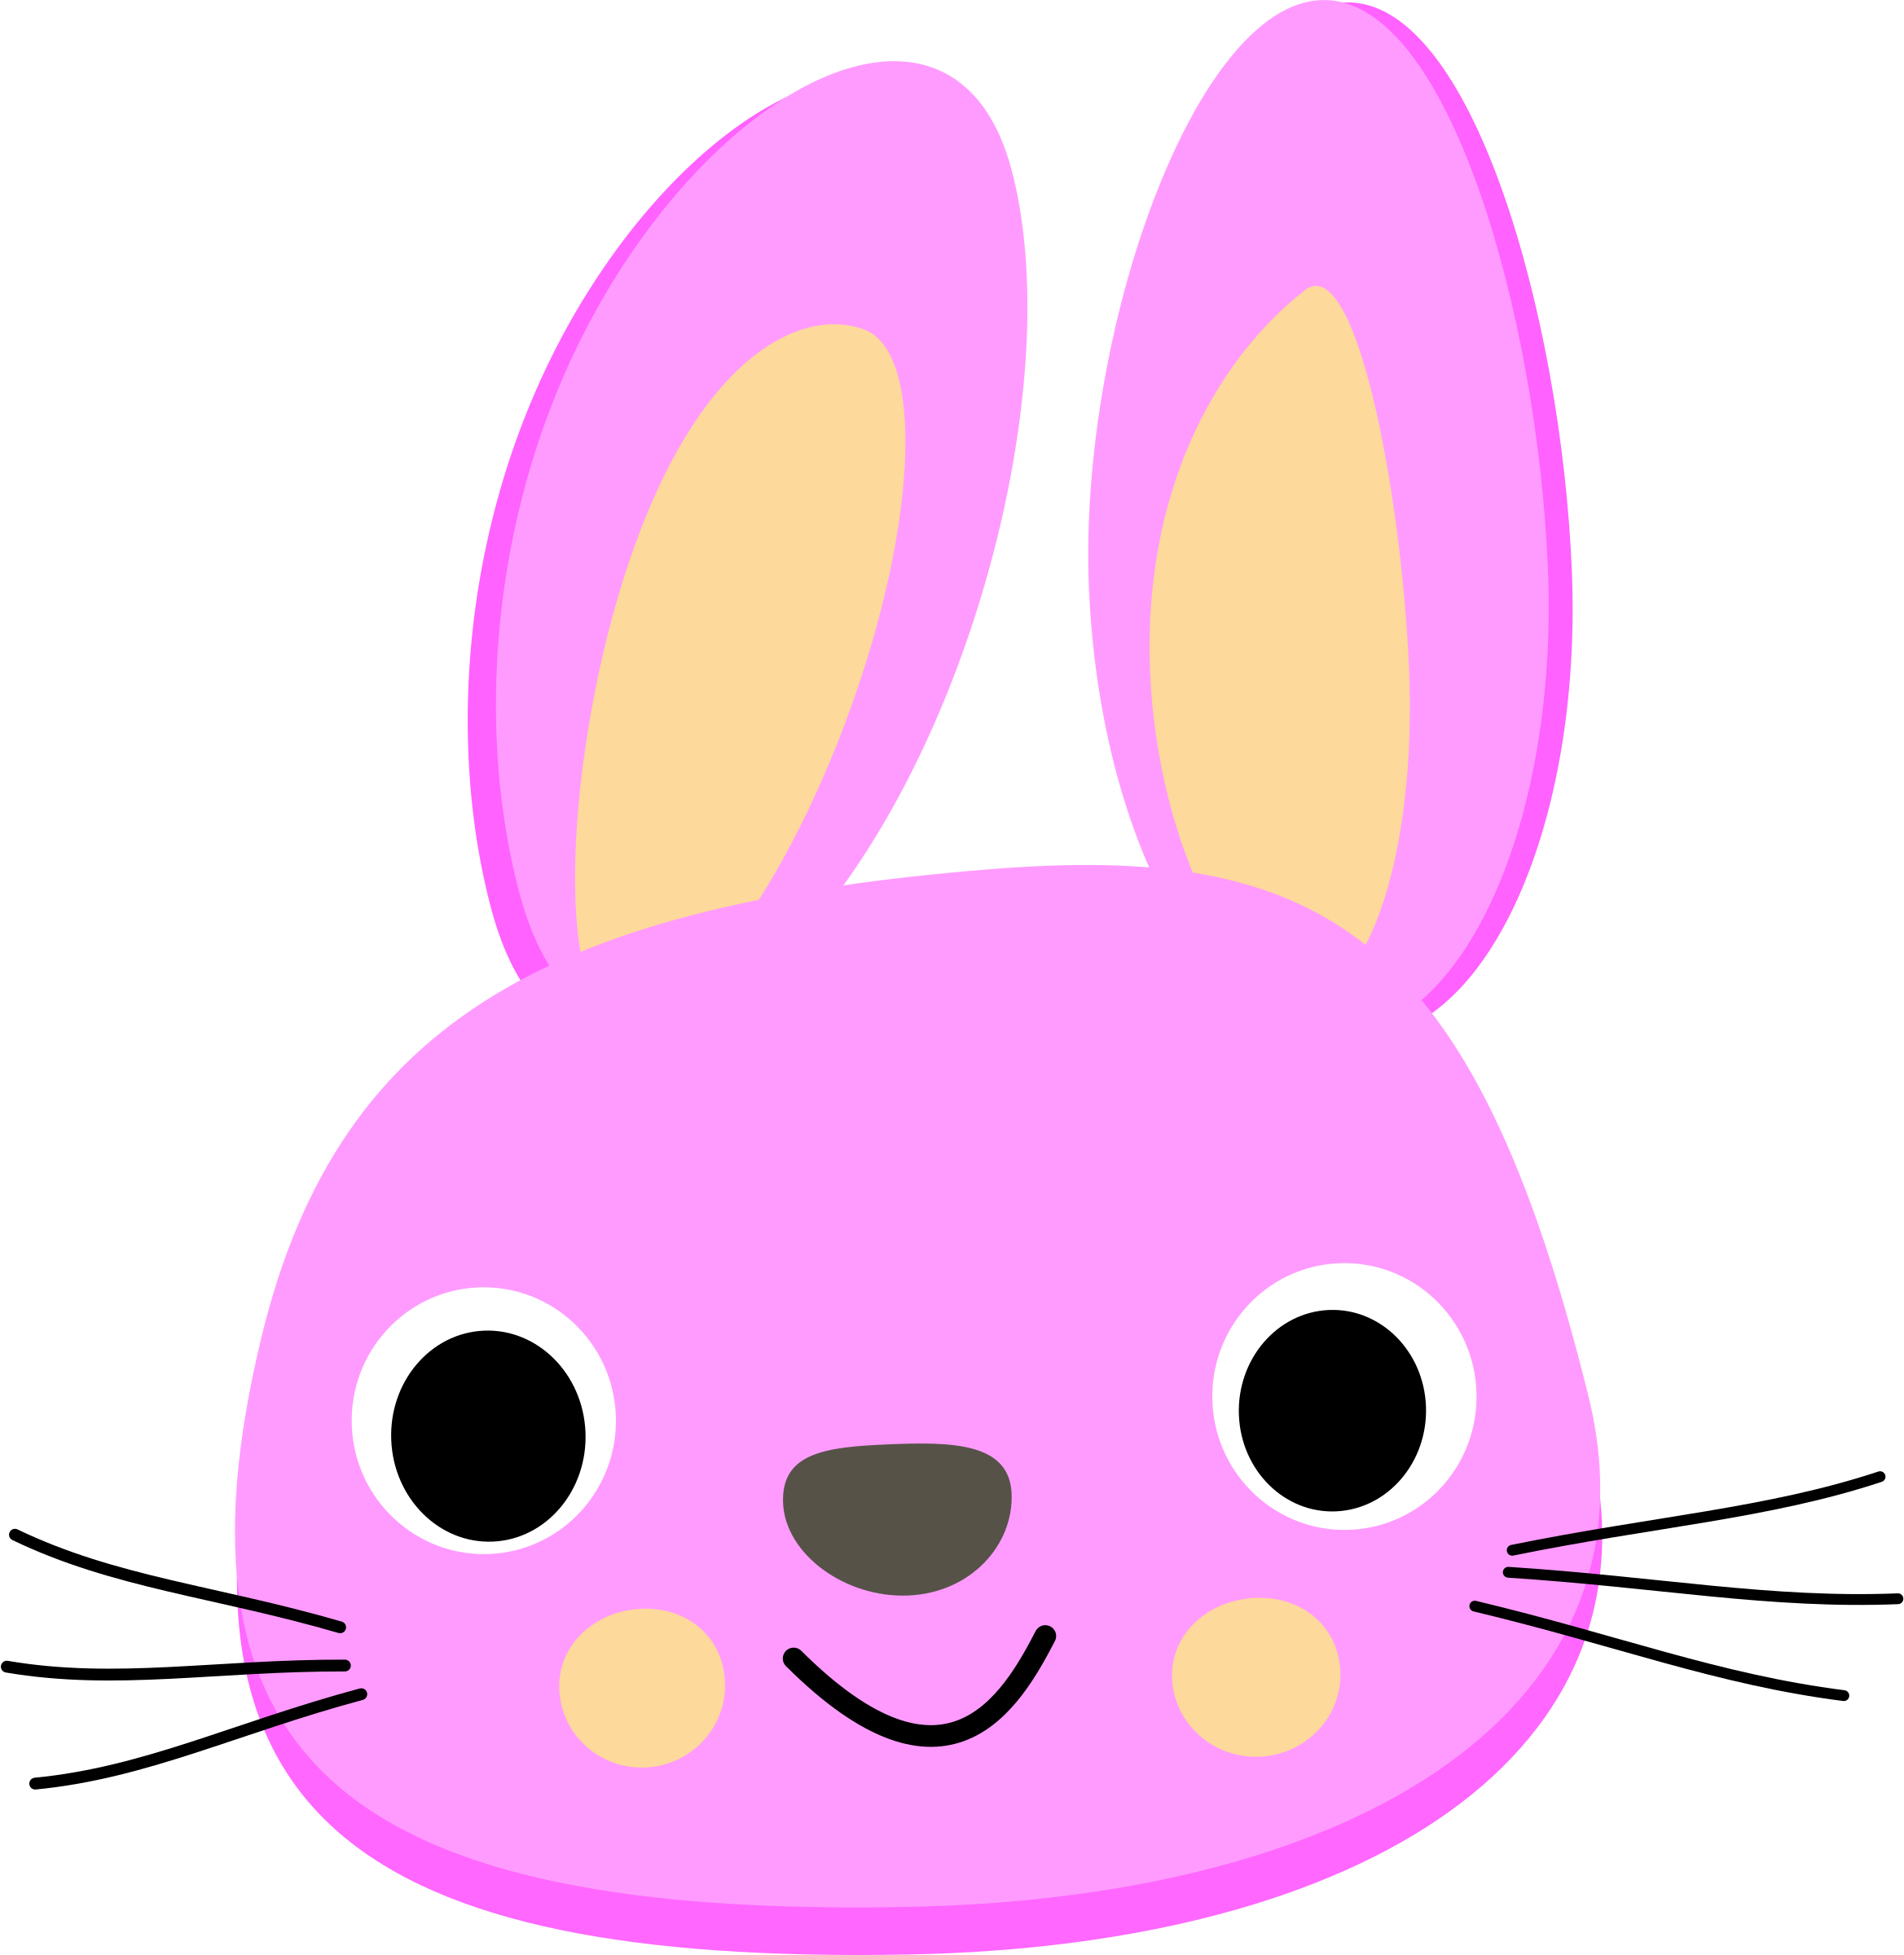 collection of pink. Faces clipart cute bunny